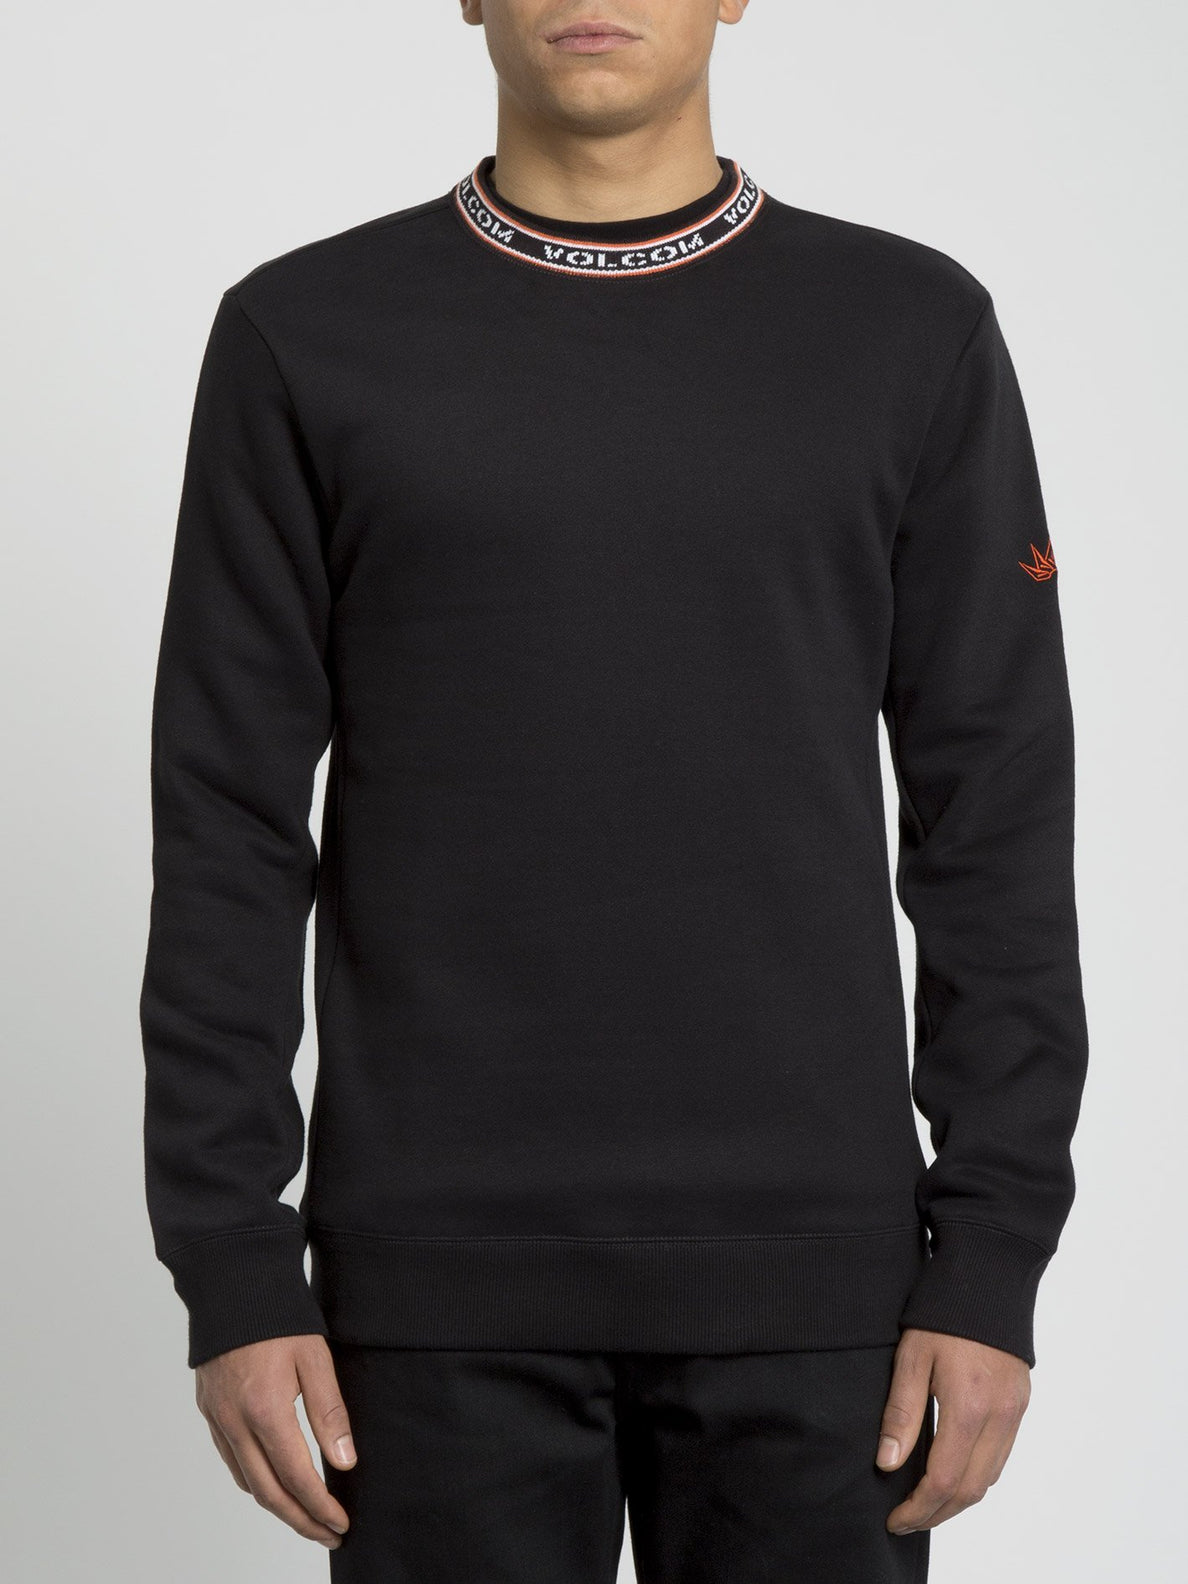 Forward To Past Sweater - Black (A4631900_BLK) [F]